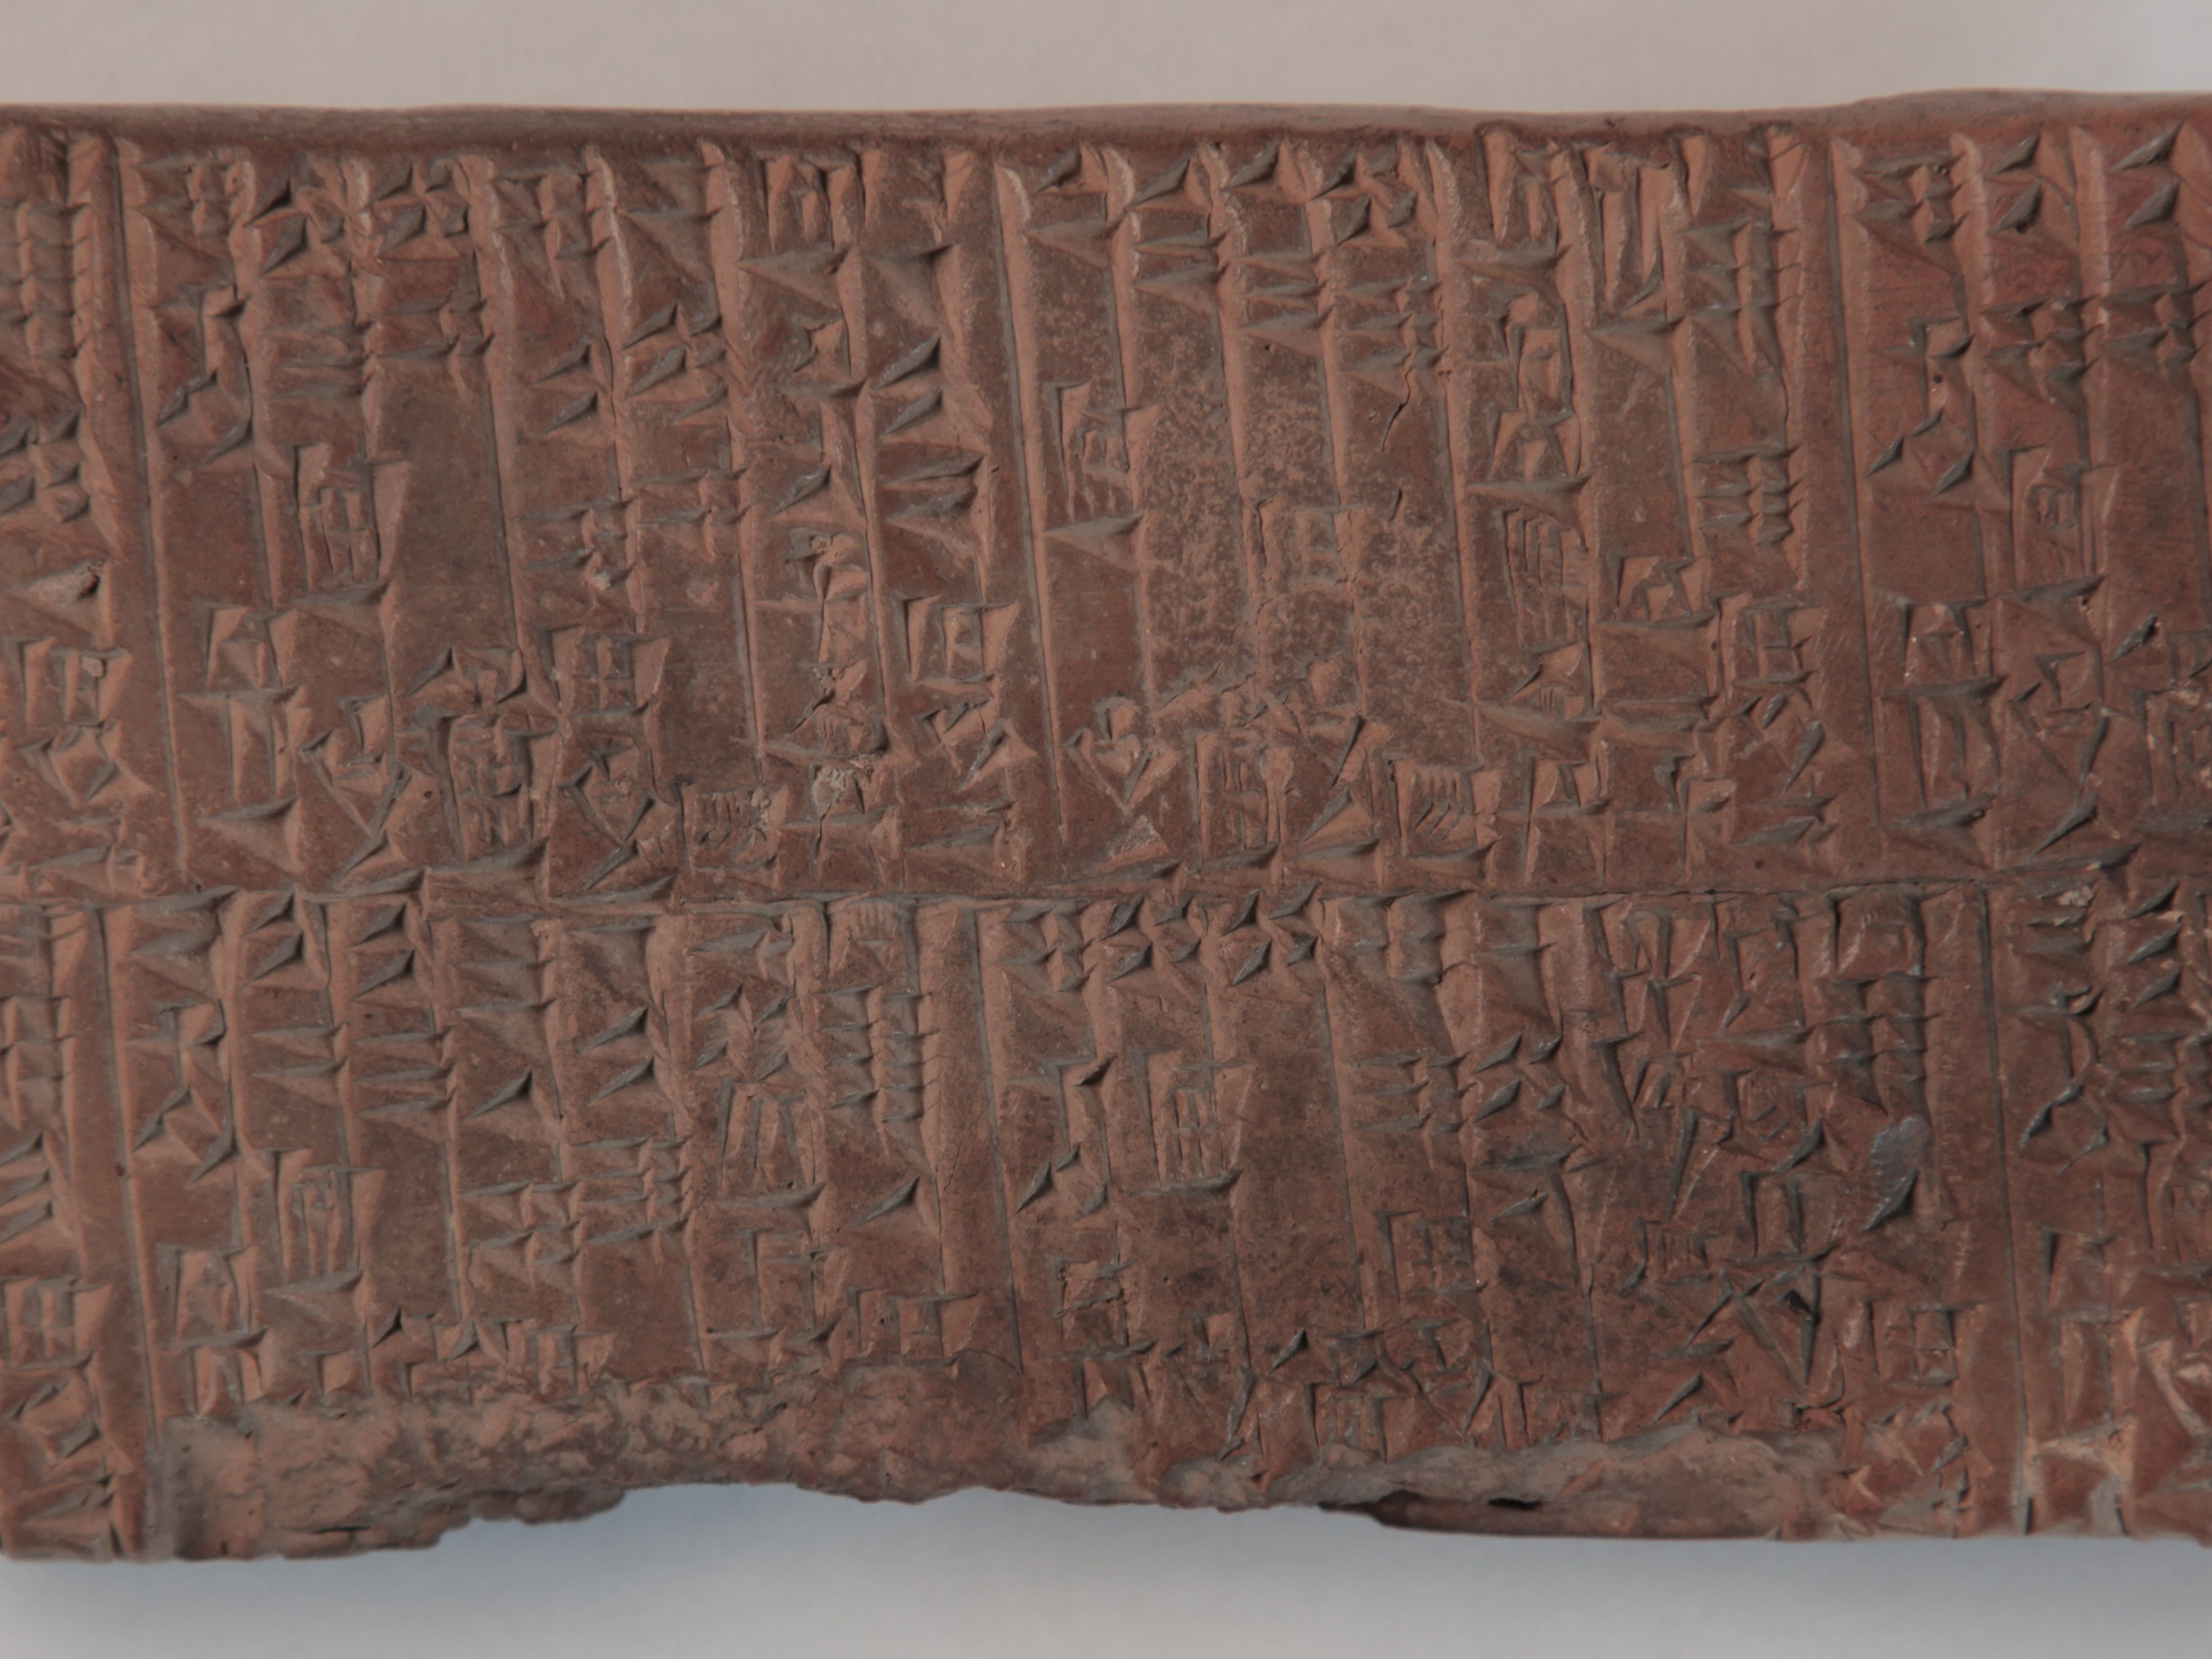 An Introduction to Sumerian Art and Culture